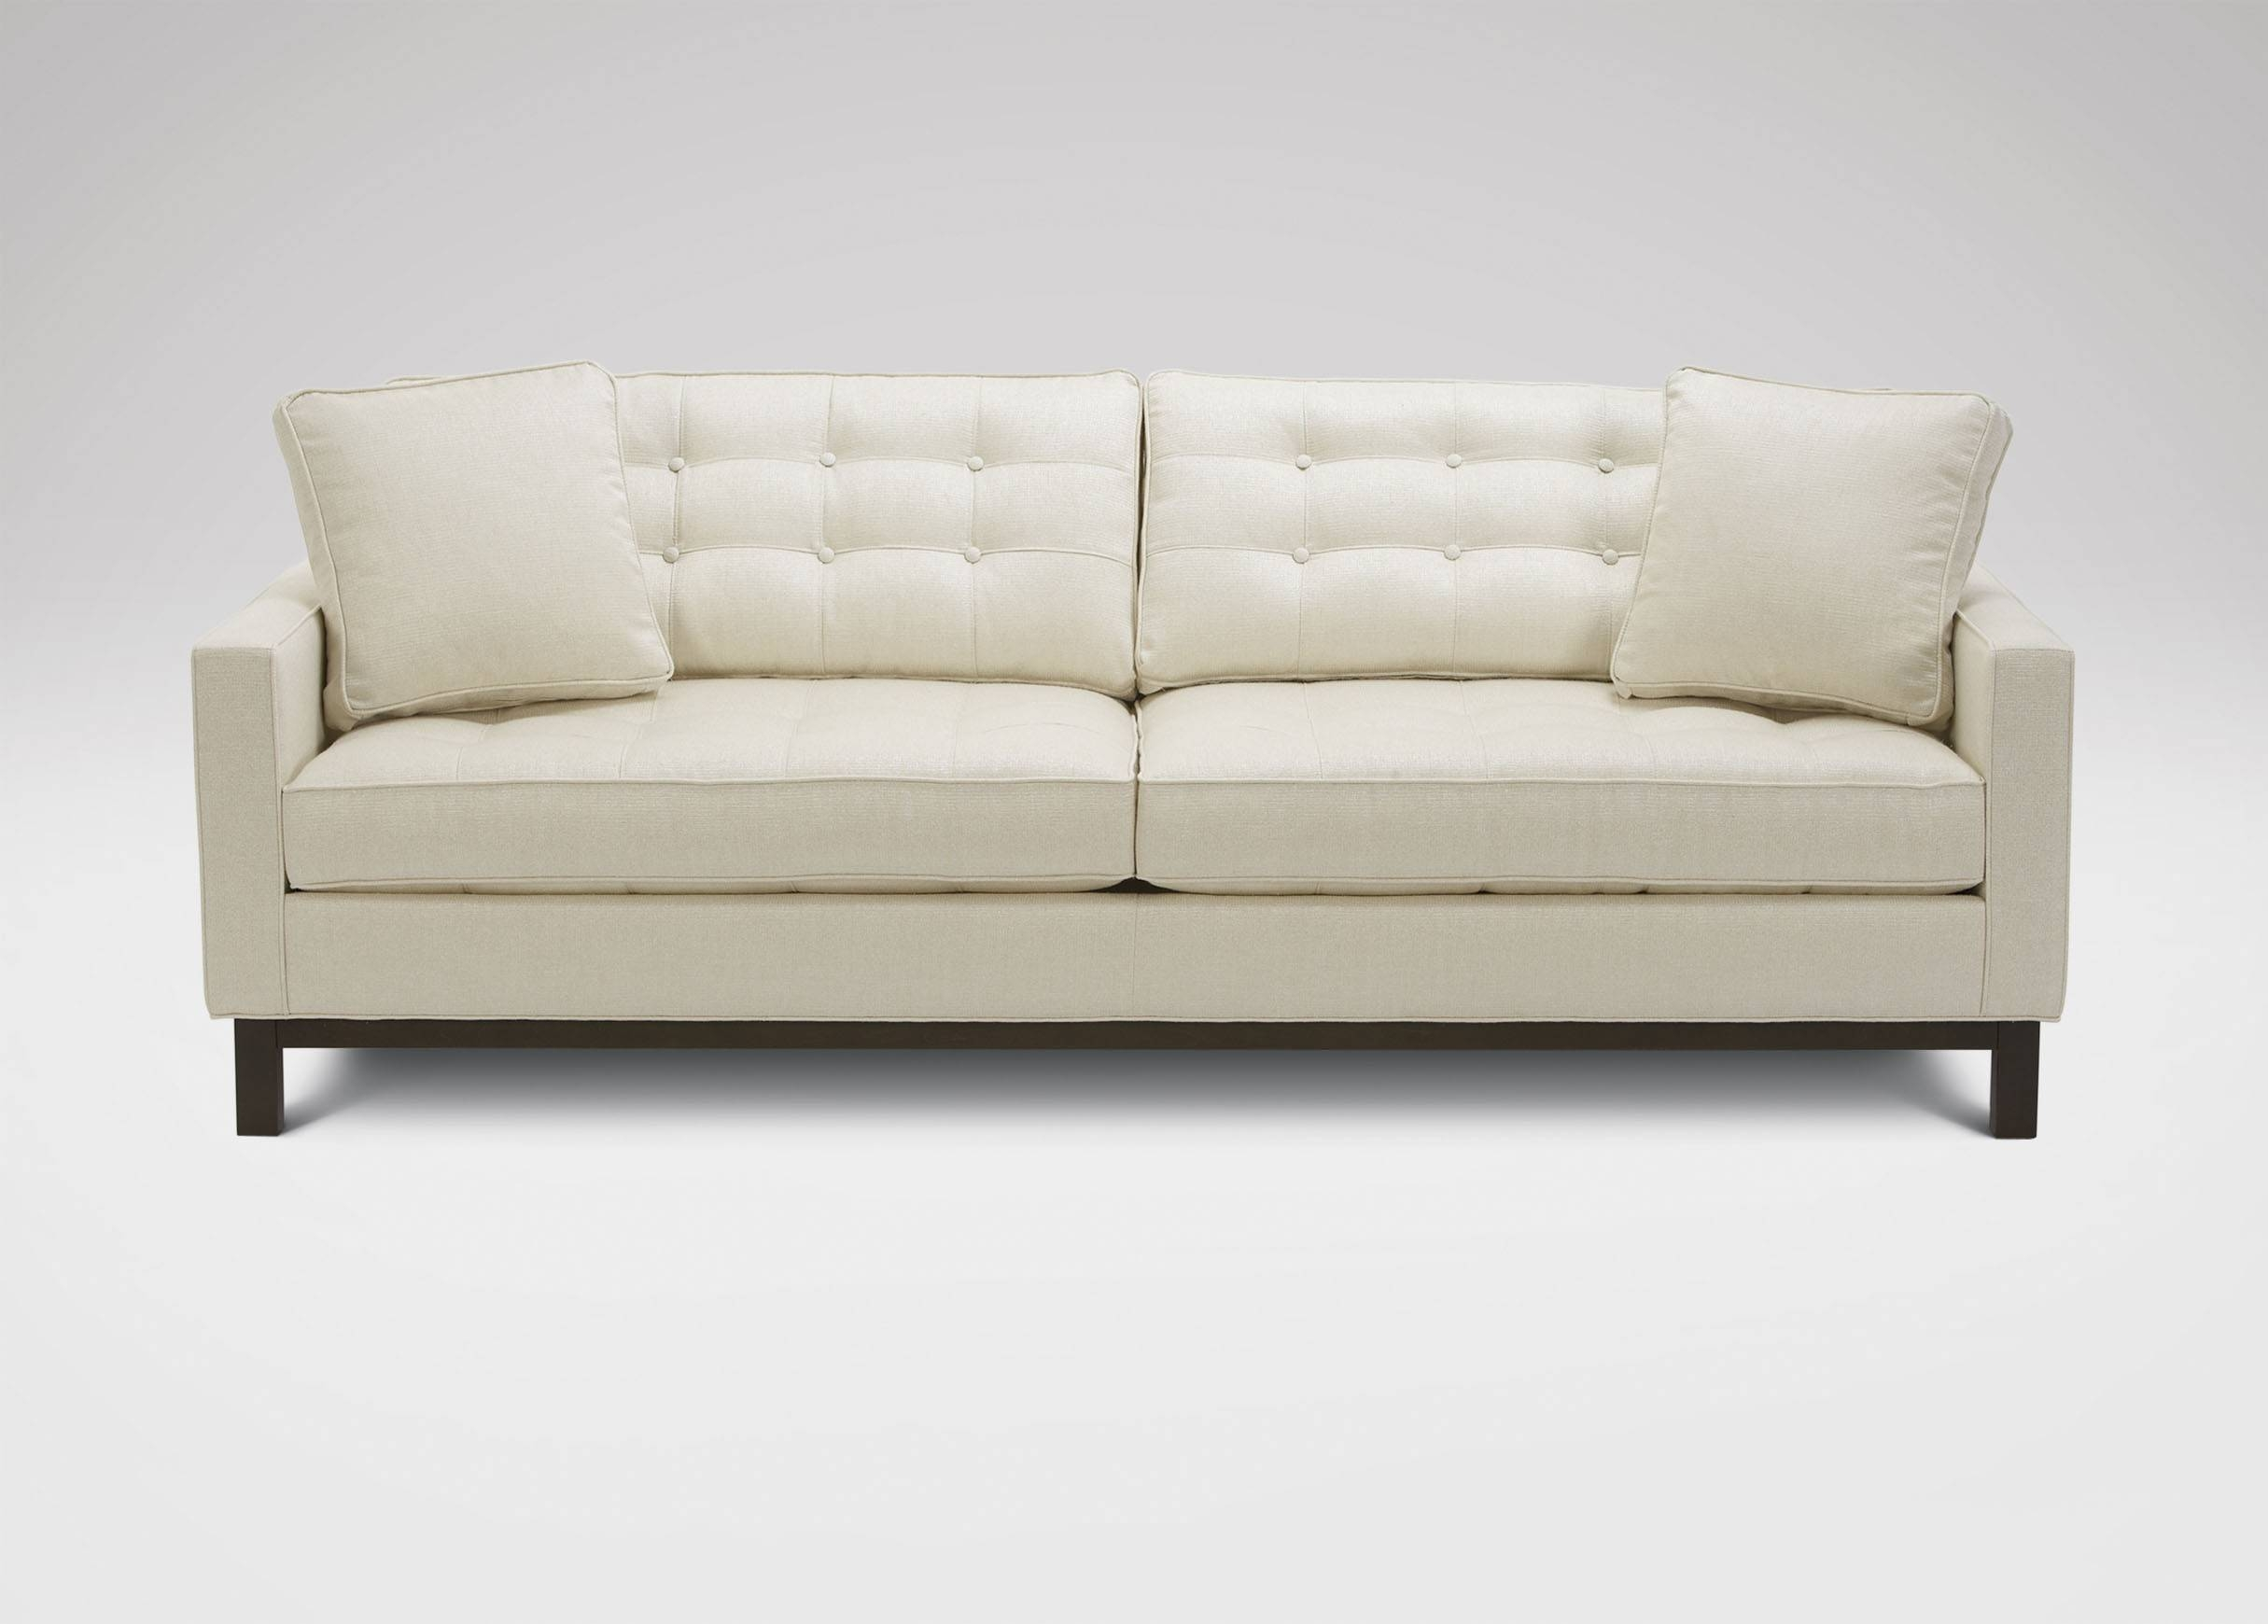 Melrose Sofa | Sofas & Loveseats within Ethan Allen Chesterfield Sofas (Image 14 of 15)